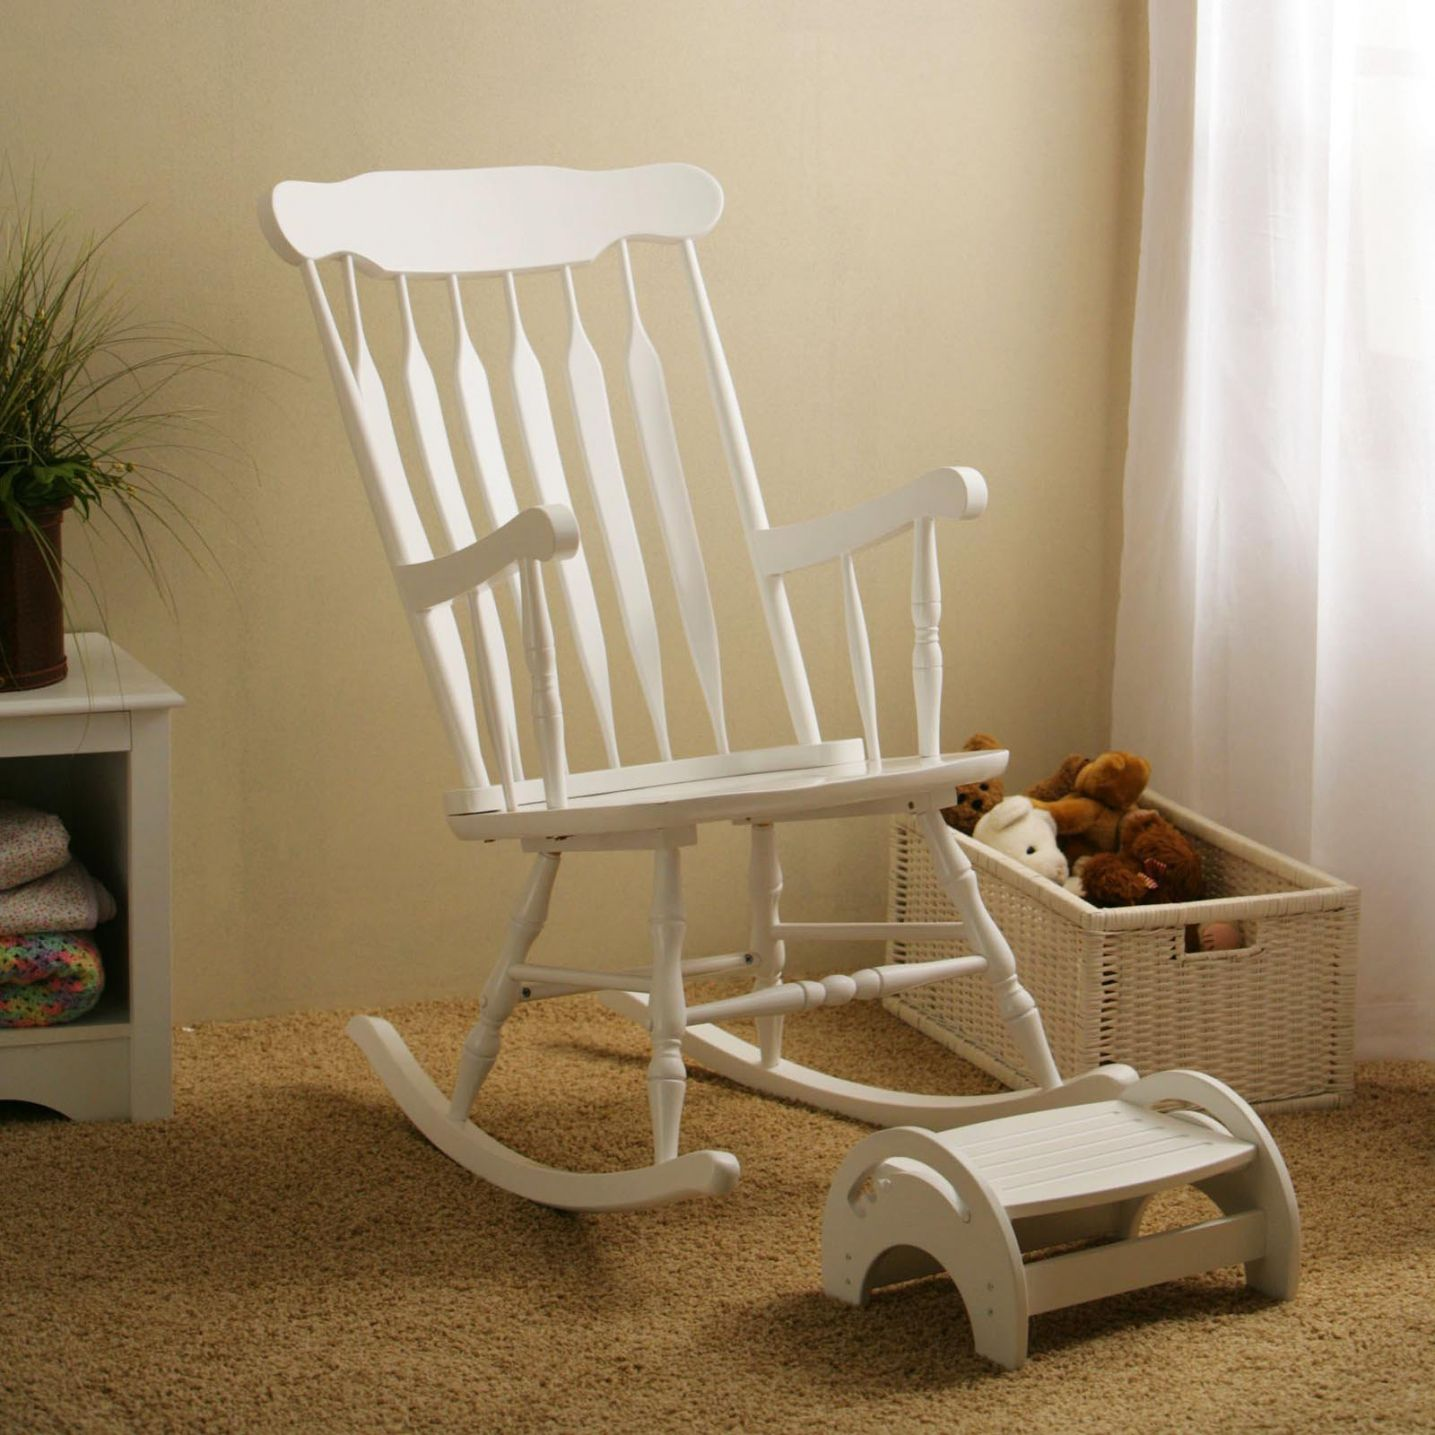 Surprising Pin By Rahayu12 On Spaces Room Low Budget White Wooden Camellatalisay Diy Chair Ideas Camellatalisaycom